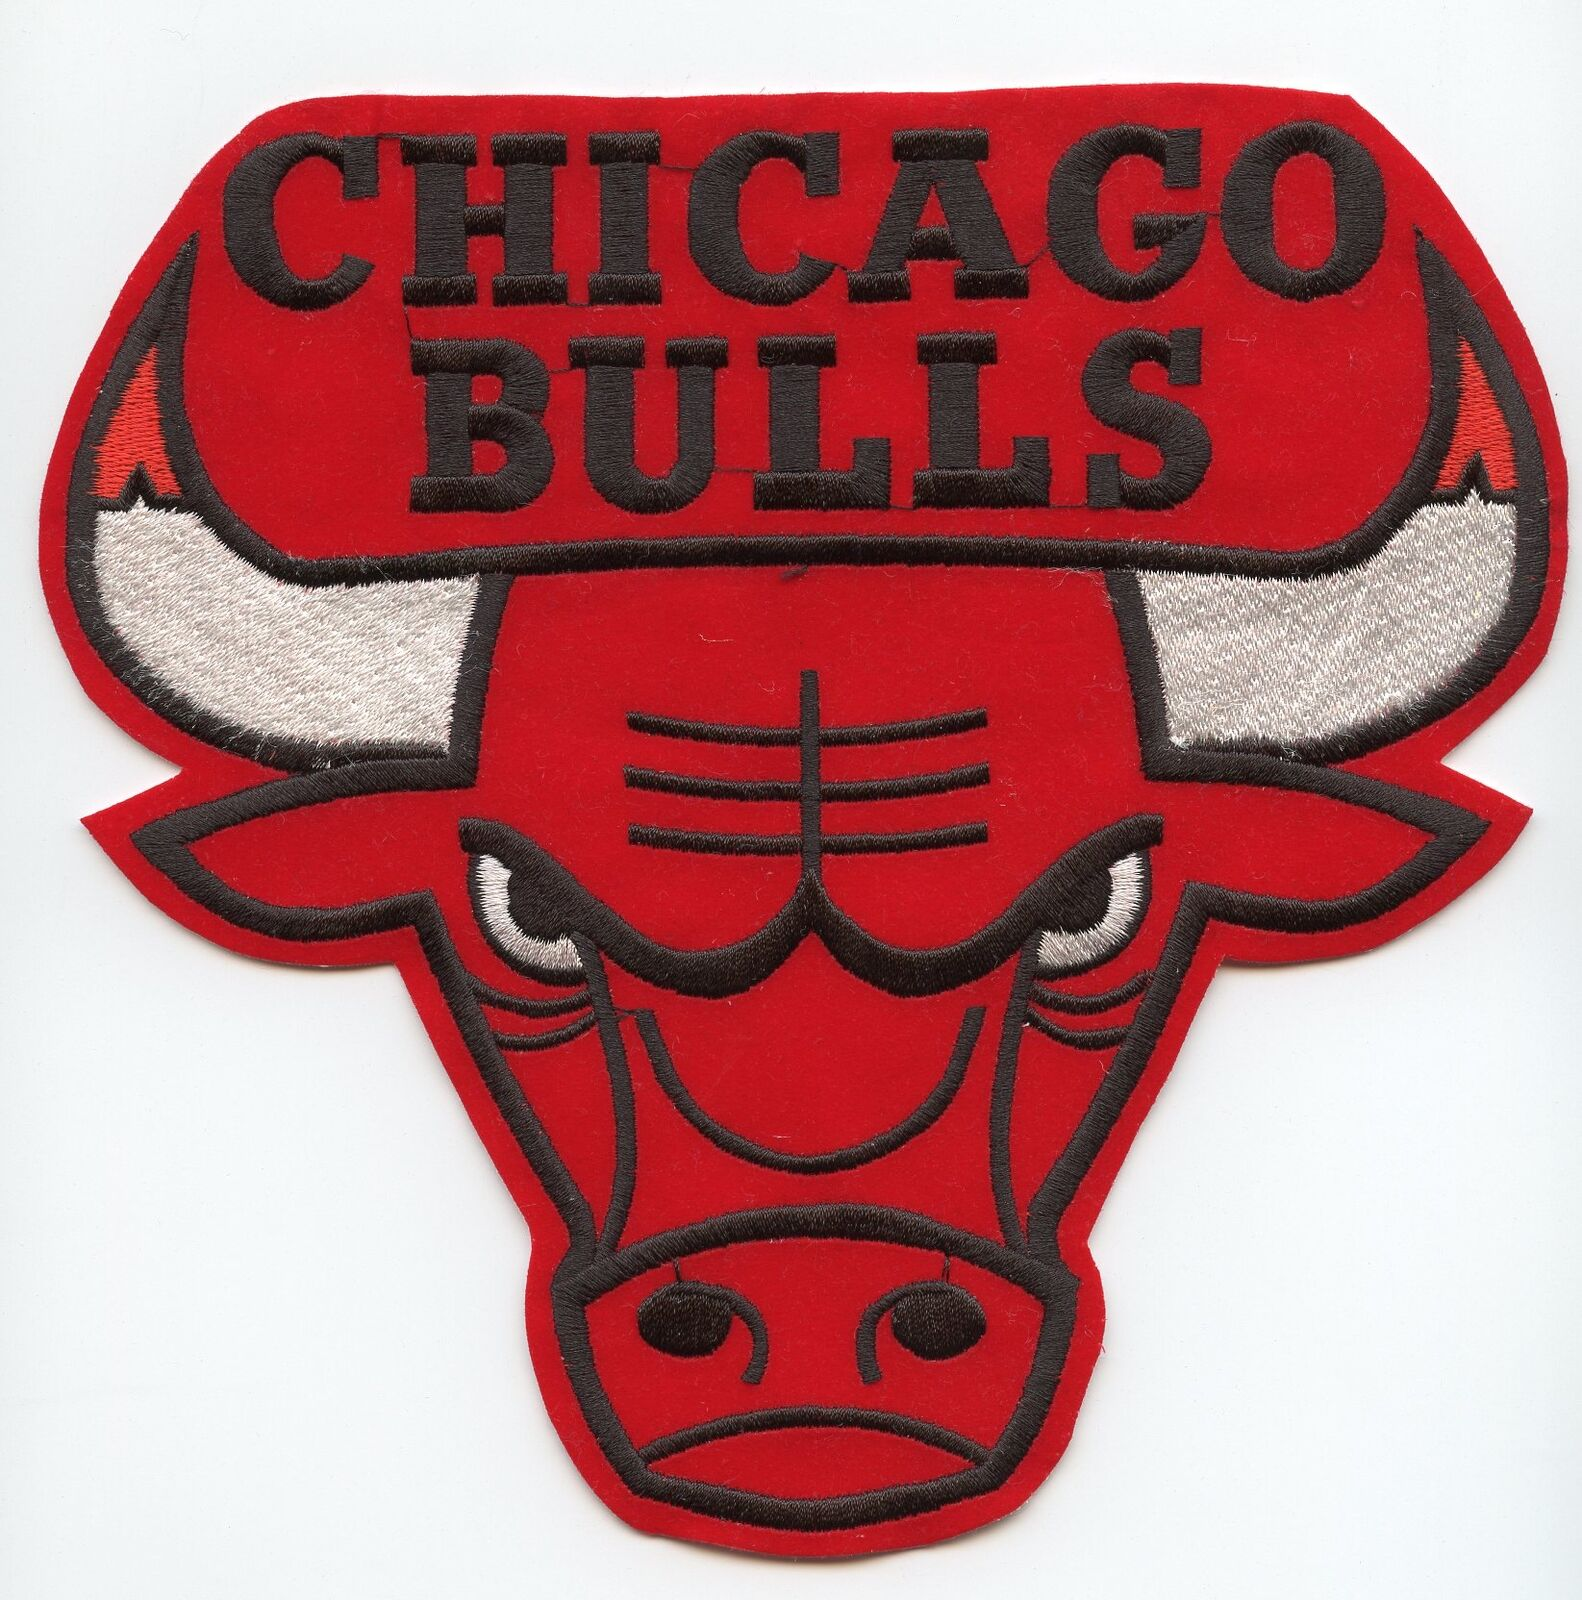 Details about NBA CHICAGO BULLS Logo Emblem Embrodiered Suede Patch 7\